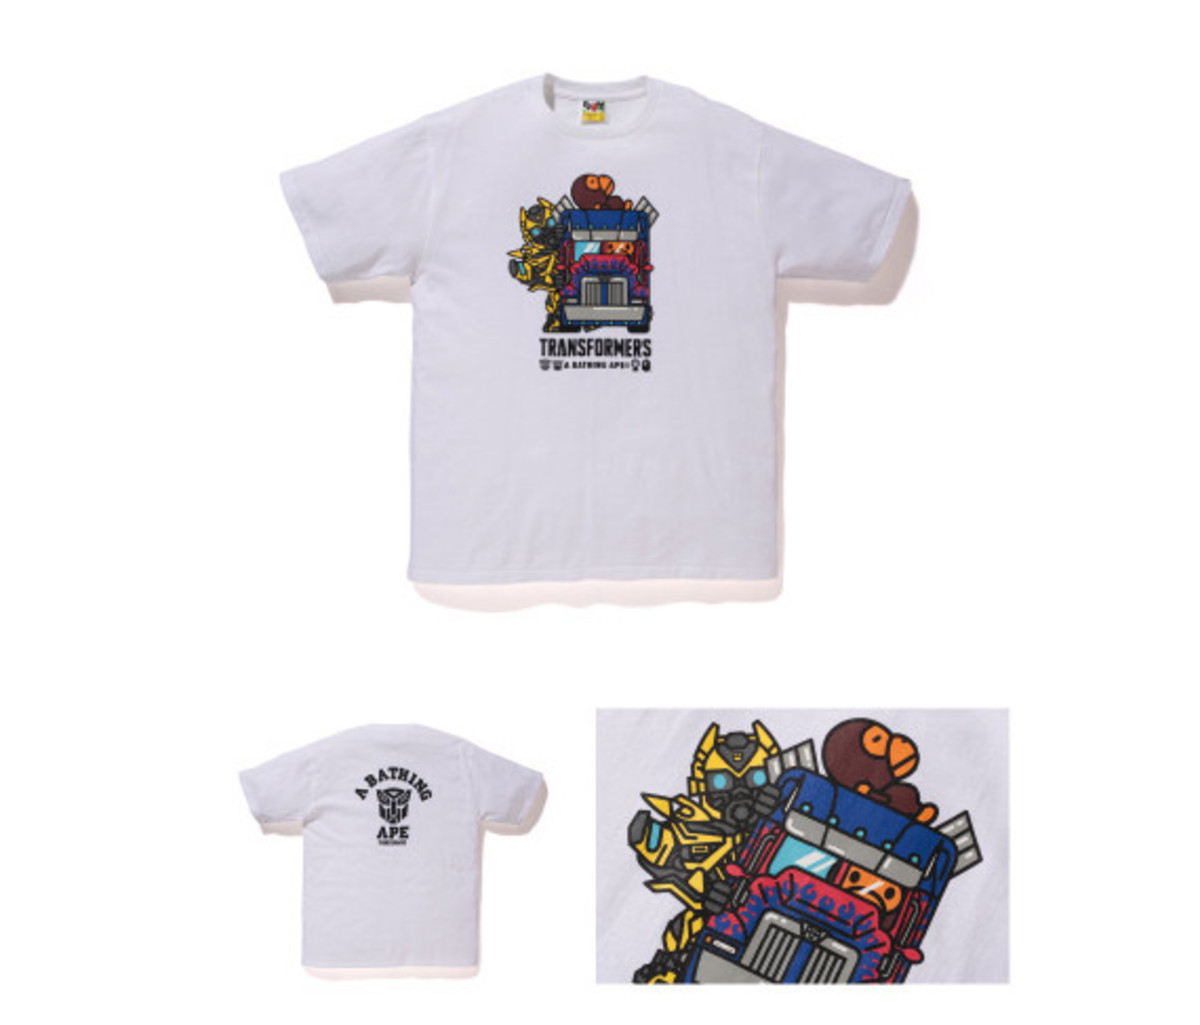 a-bathing-ape-transformers-fall-2014-capsule-collection-05